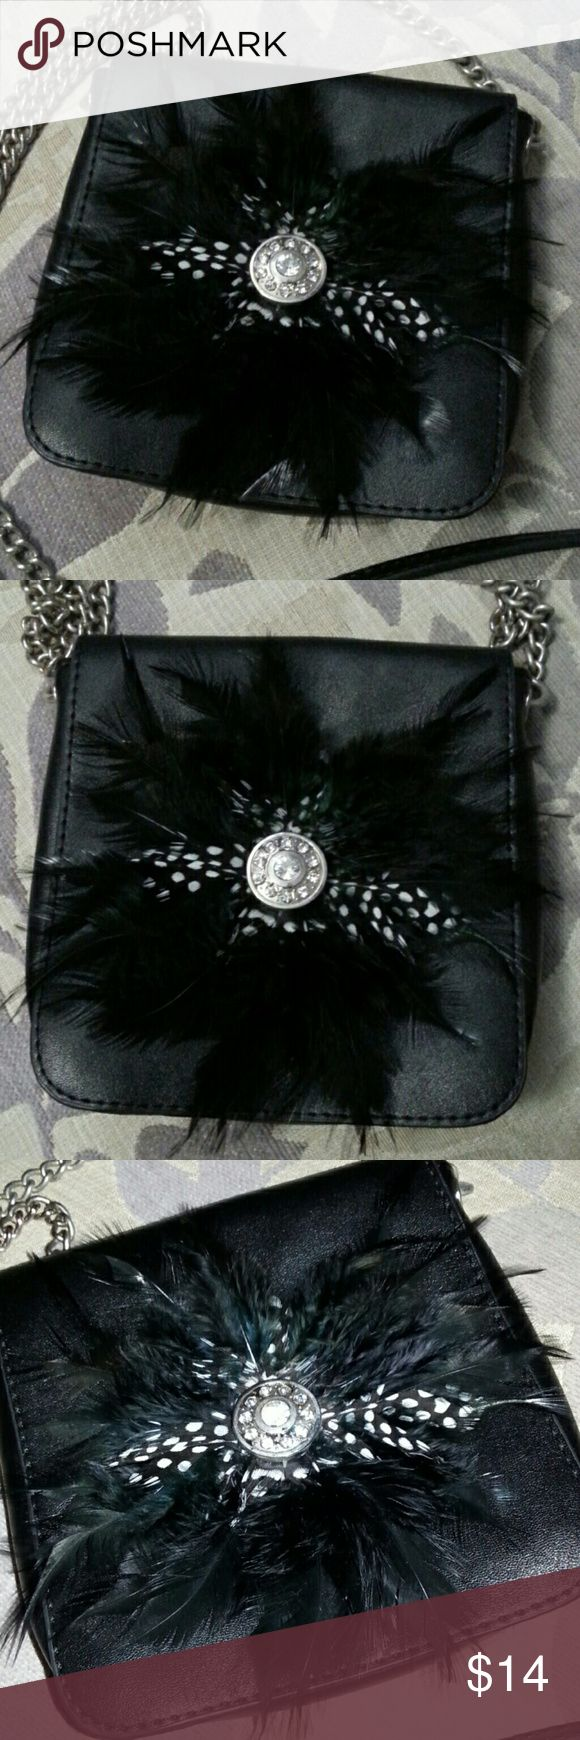 small, fun & classy cross-shoulder purse Small, black, leather purse with feathers and beads. Long chain for over shoulder / cross body wear. Bags Crossbody Bags